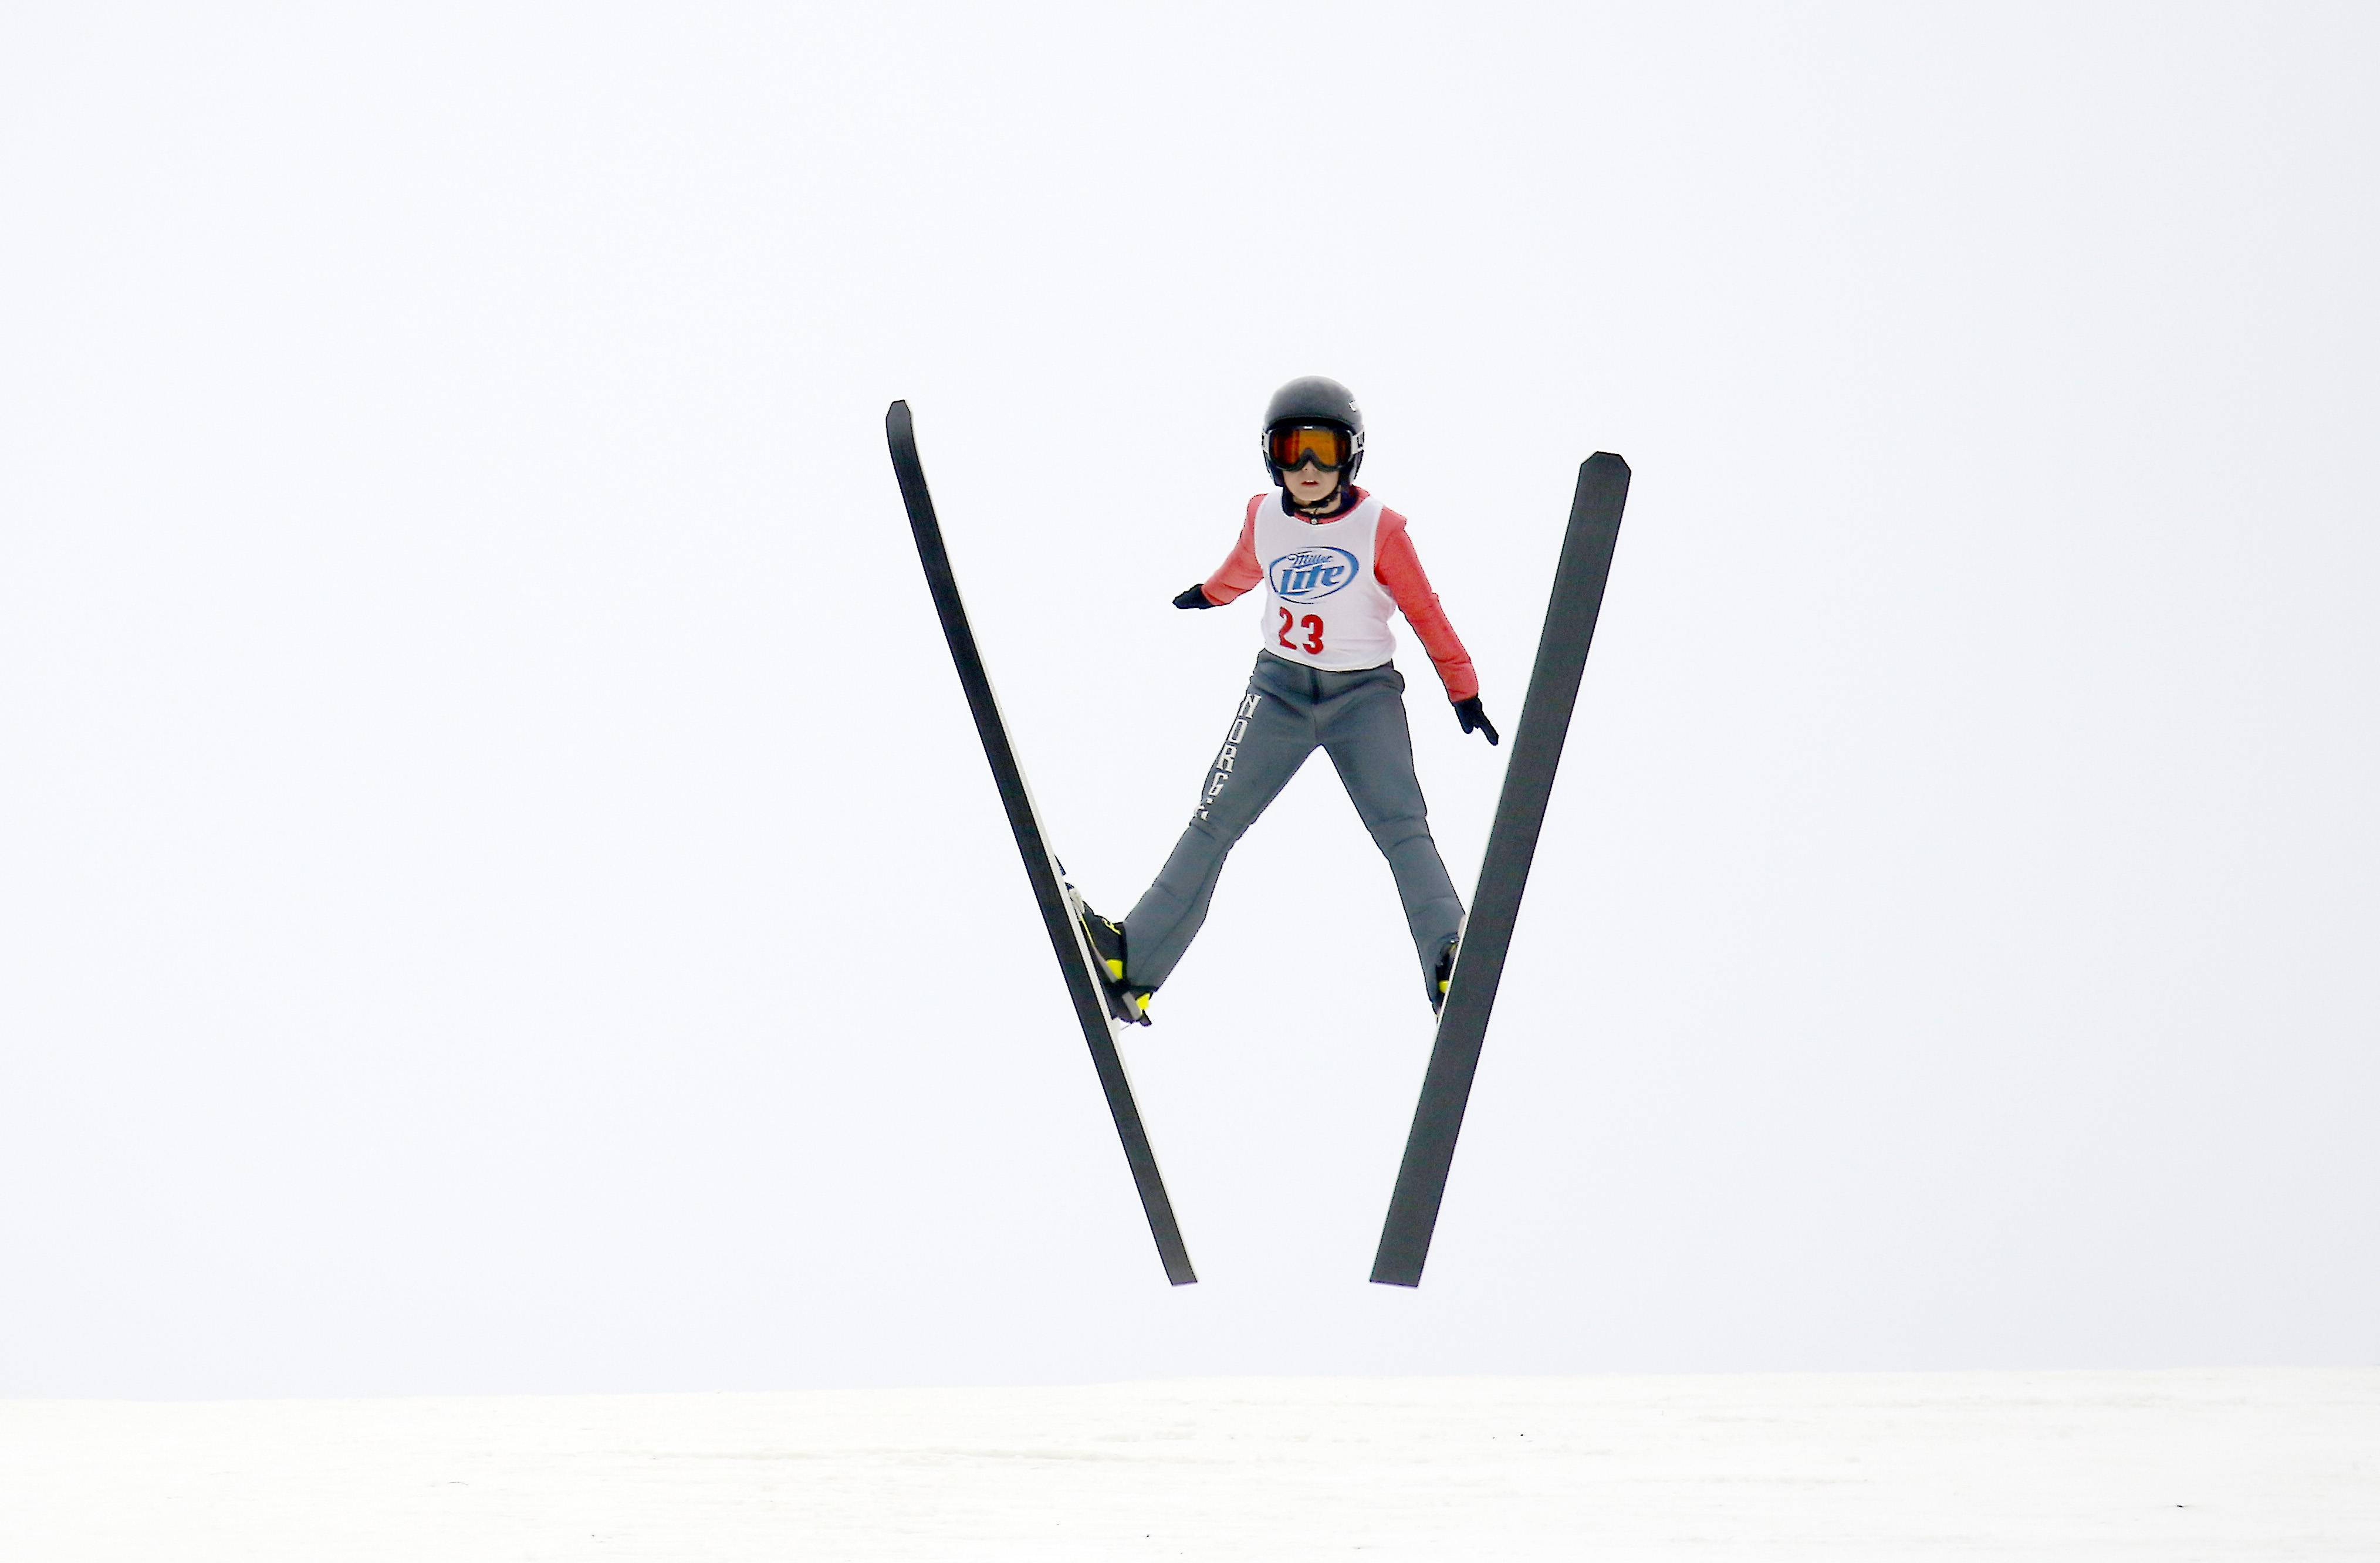 Maxim Glyvka, of Fox River Grove and the Norge Ski Club launches himself from the big hill Saturday during the 112th International Winter Tournament at the Norge Winter Ski Jump Tournament at Norge Ski Club in Fox River Grove.